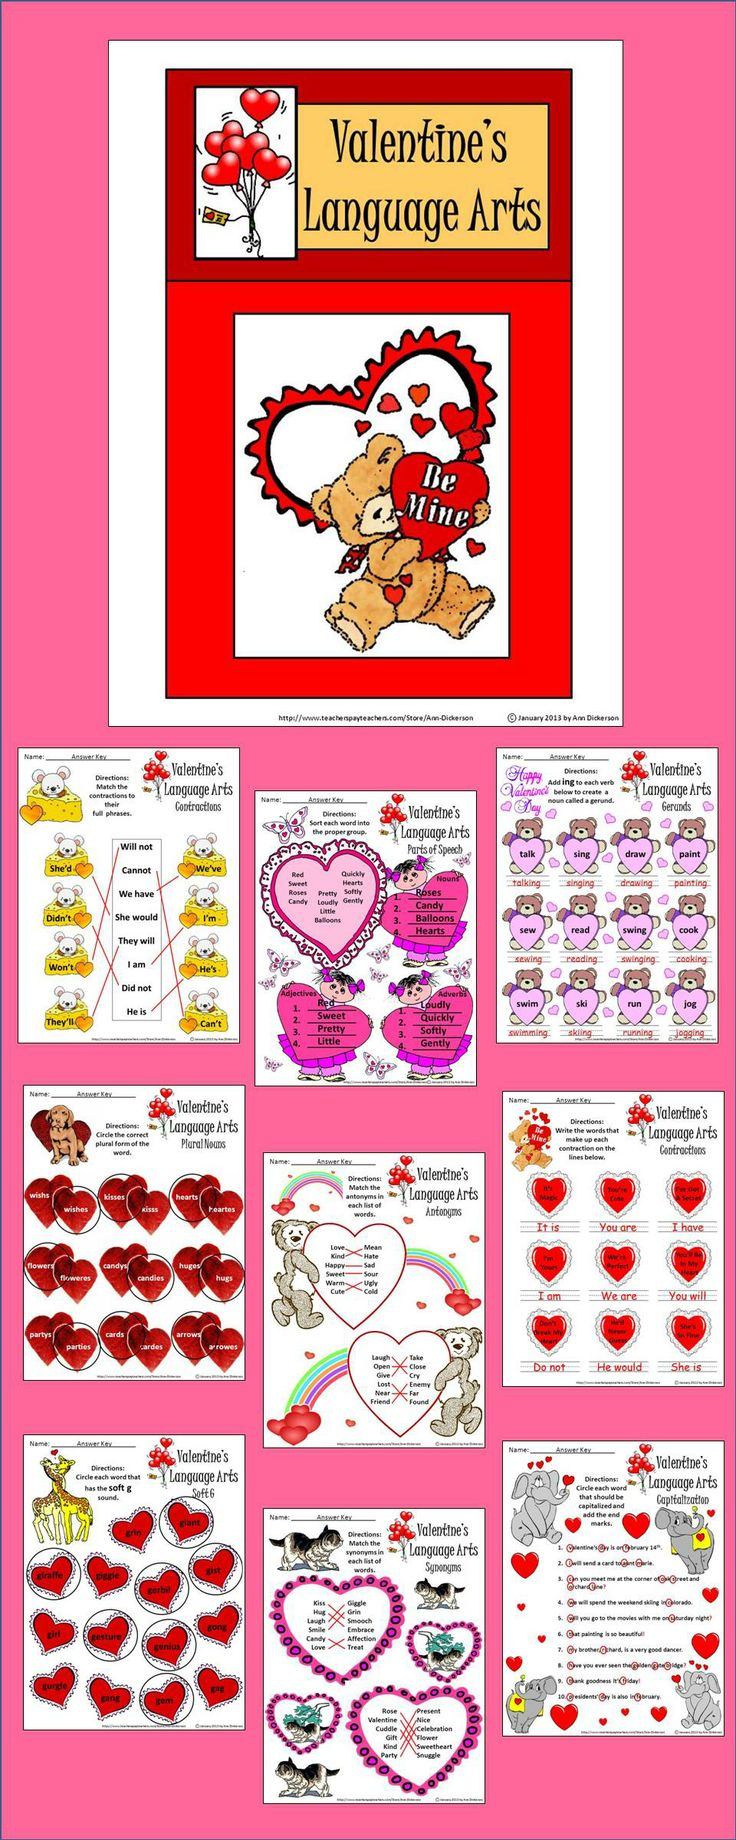 Valentine Language Arts Activity Packet: This is a colorful Valentine's Day Language Arts activity packet packed with many grammar exercises.  Worksheets include: * Contractions * Plural Nouns * Synonyms * Antonyms * End Marks * Capitalization * Parts Of Speech * Gerunds  * Soft G Words * Soft C Words * Syllables * Answer Keys